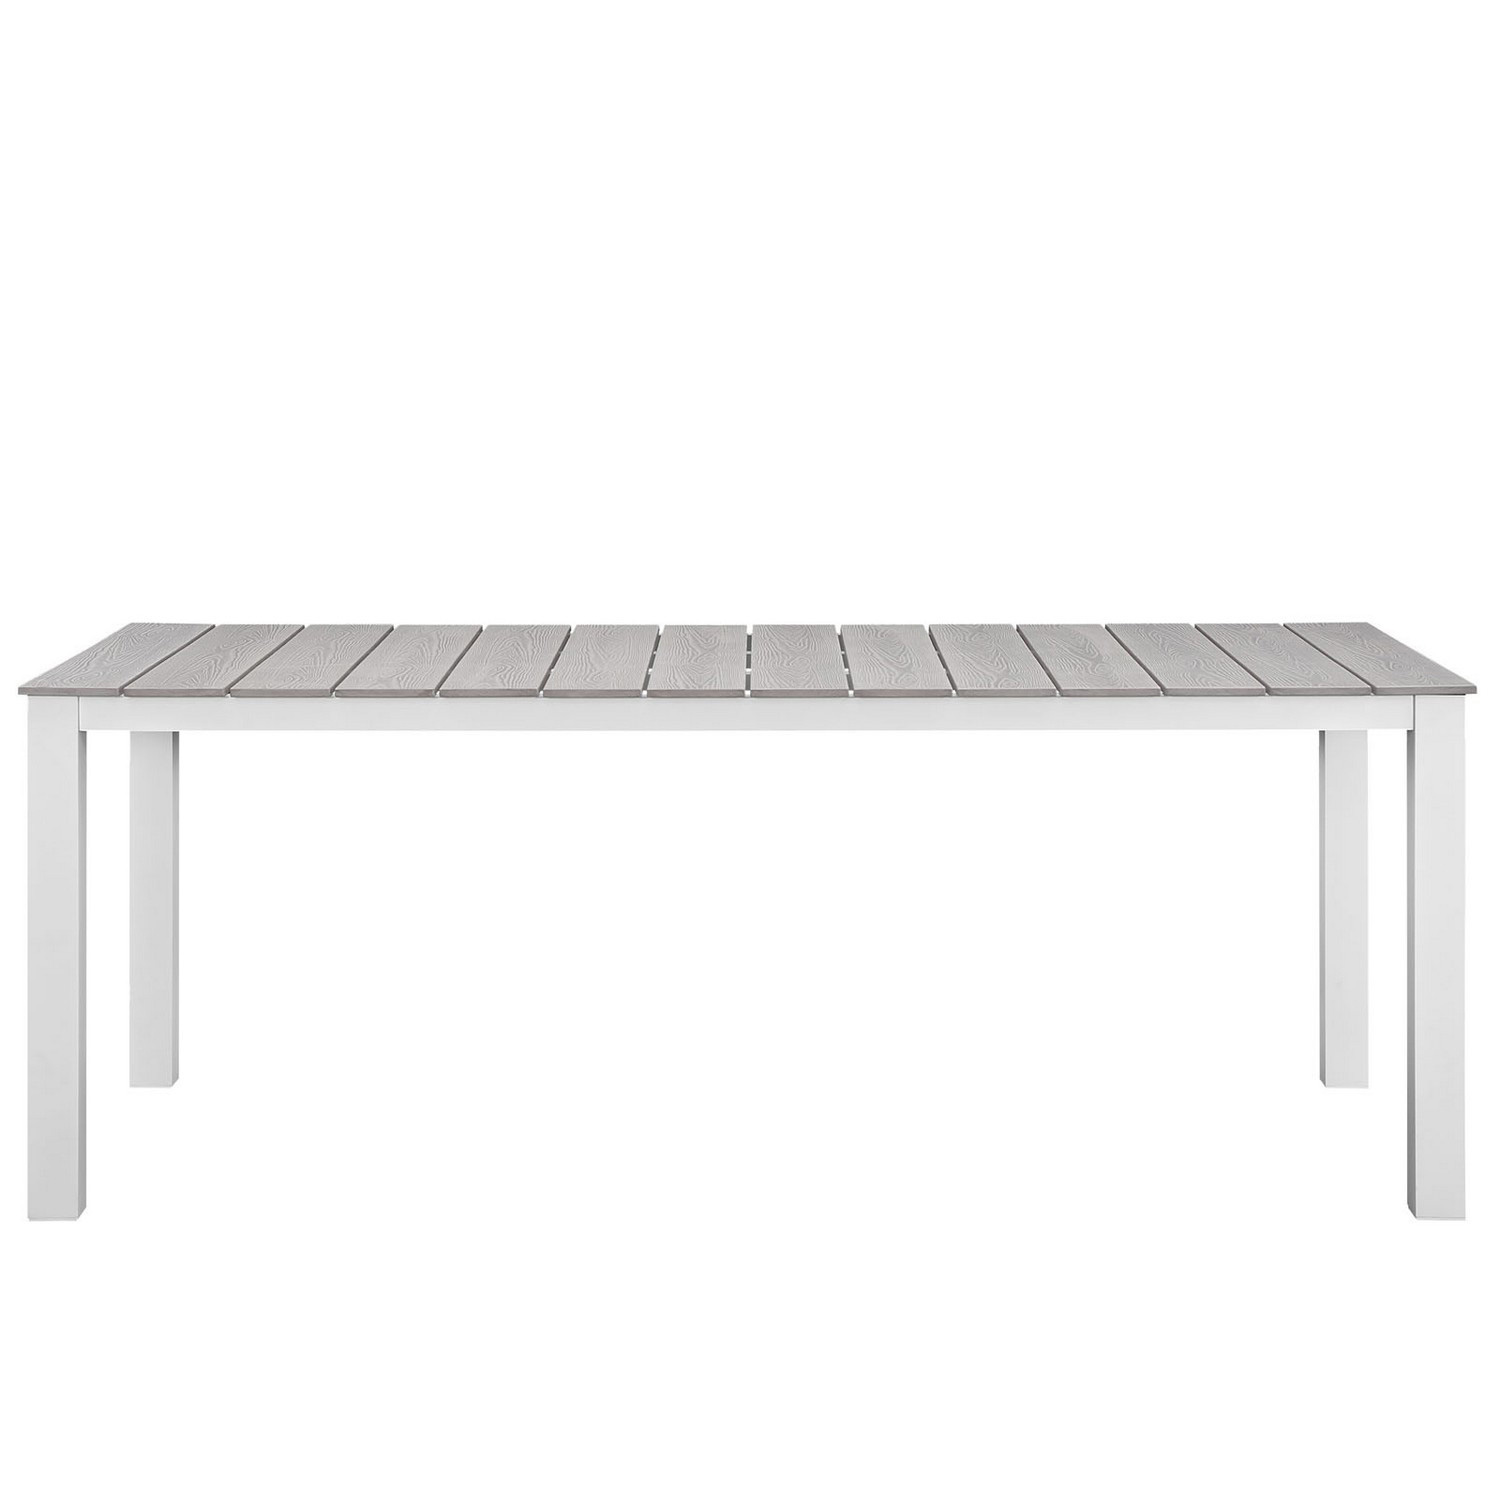 Modway Maine 80 Outdoor Patio Dining Table - White/Light Gray